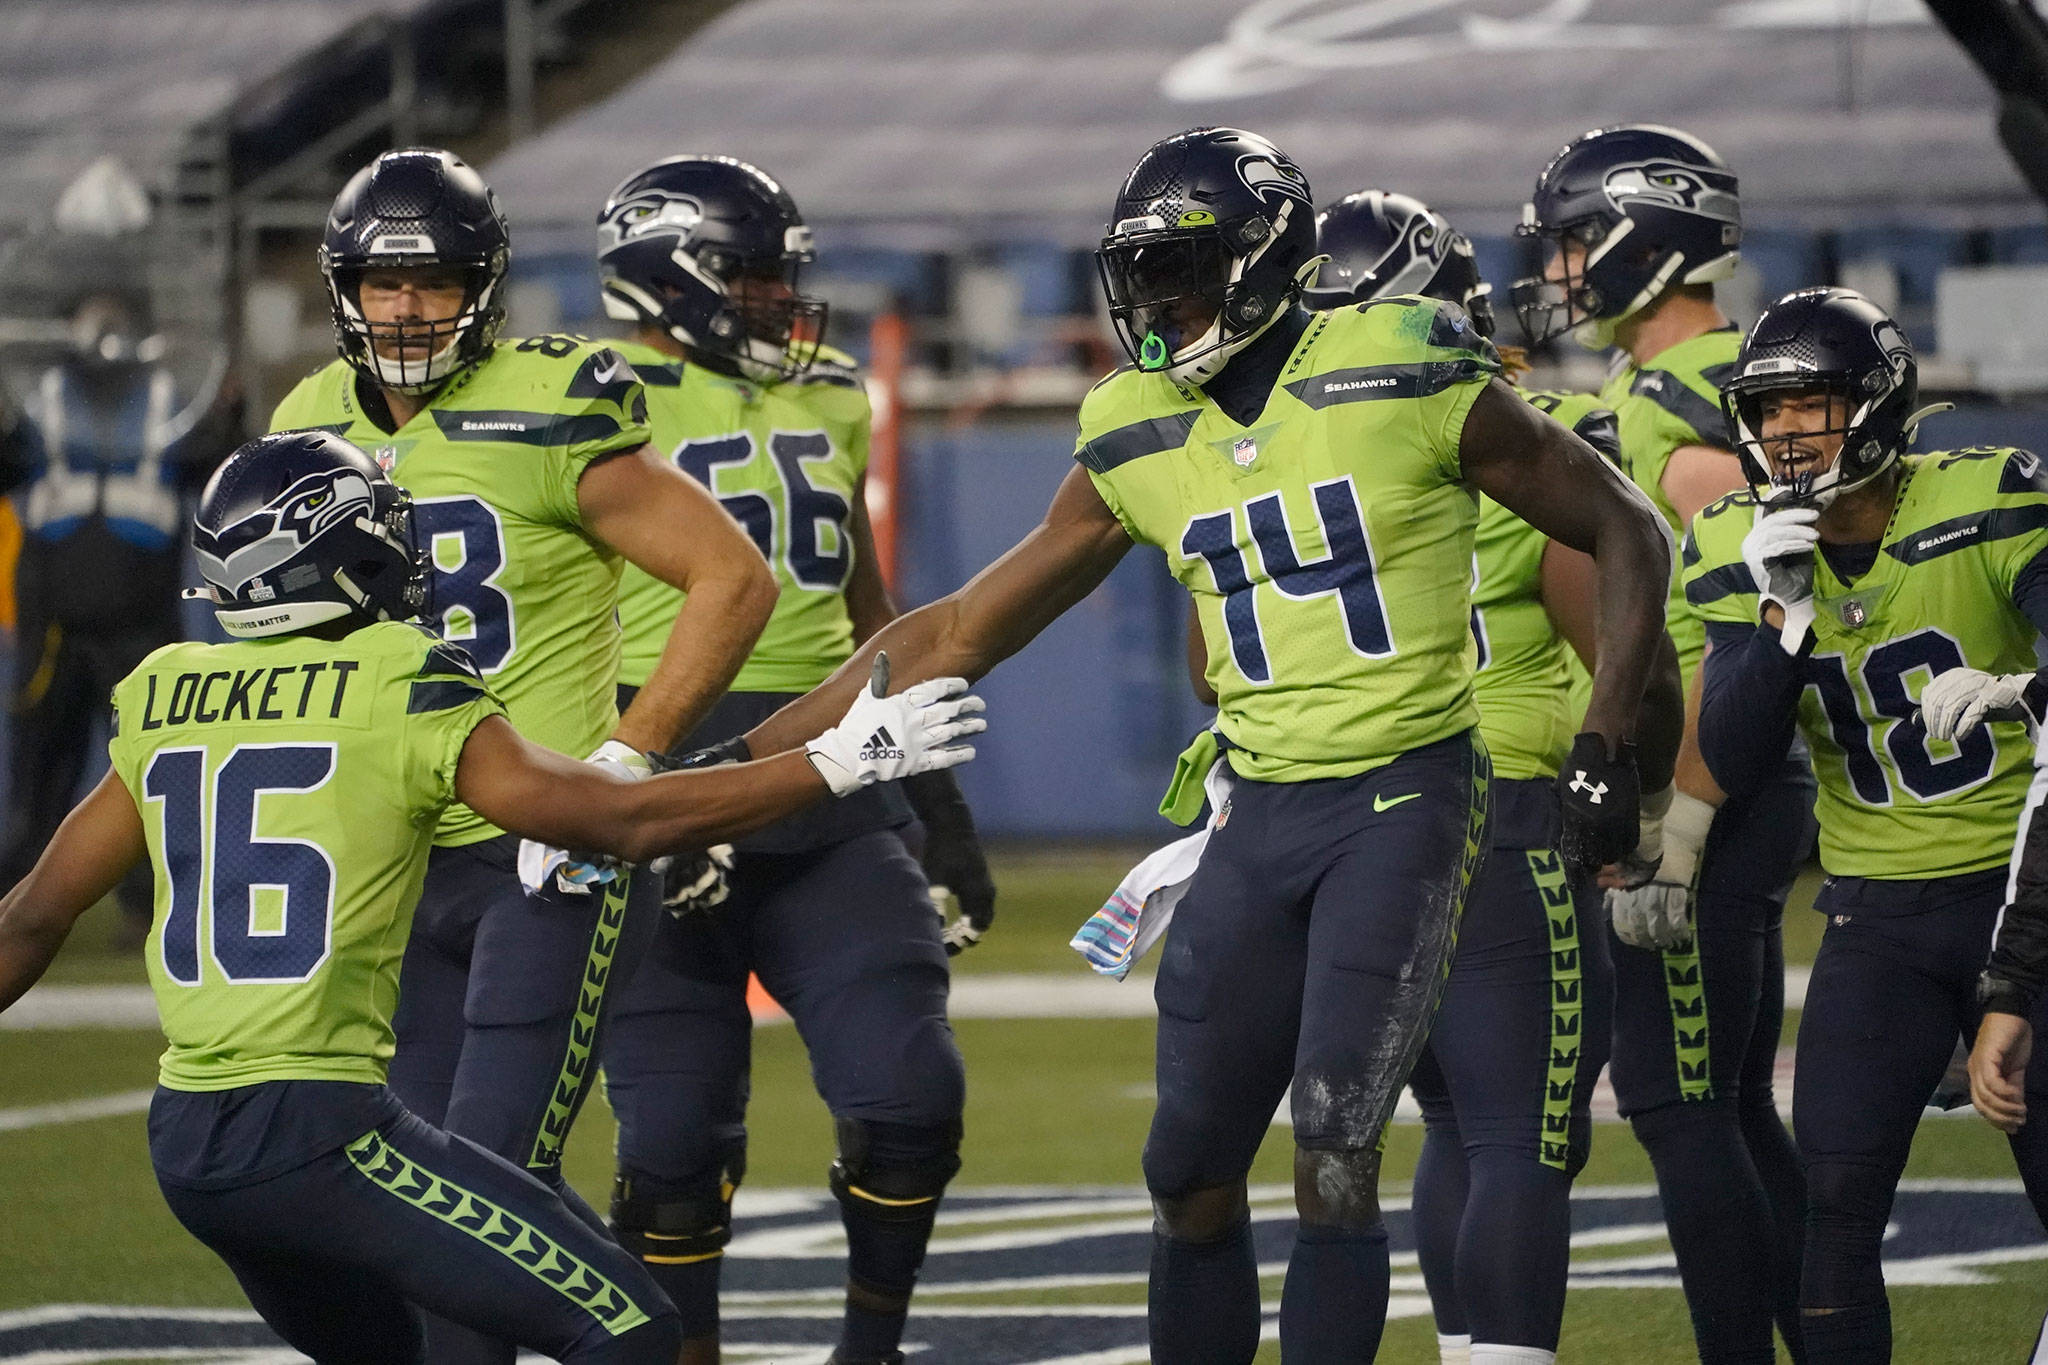 The Seahawks' DK Metcalf (14) celebrates his touchdown against the Vikings during the second half of a game Oct. 11, 2020, in Seattle. (AP Photo/Ted S. Warren)